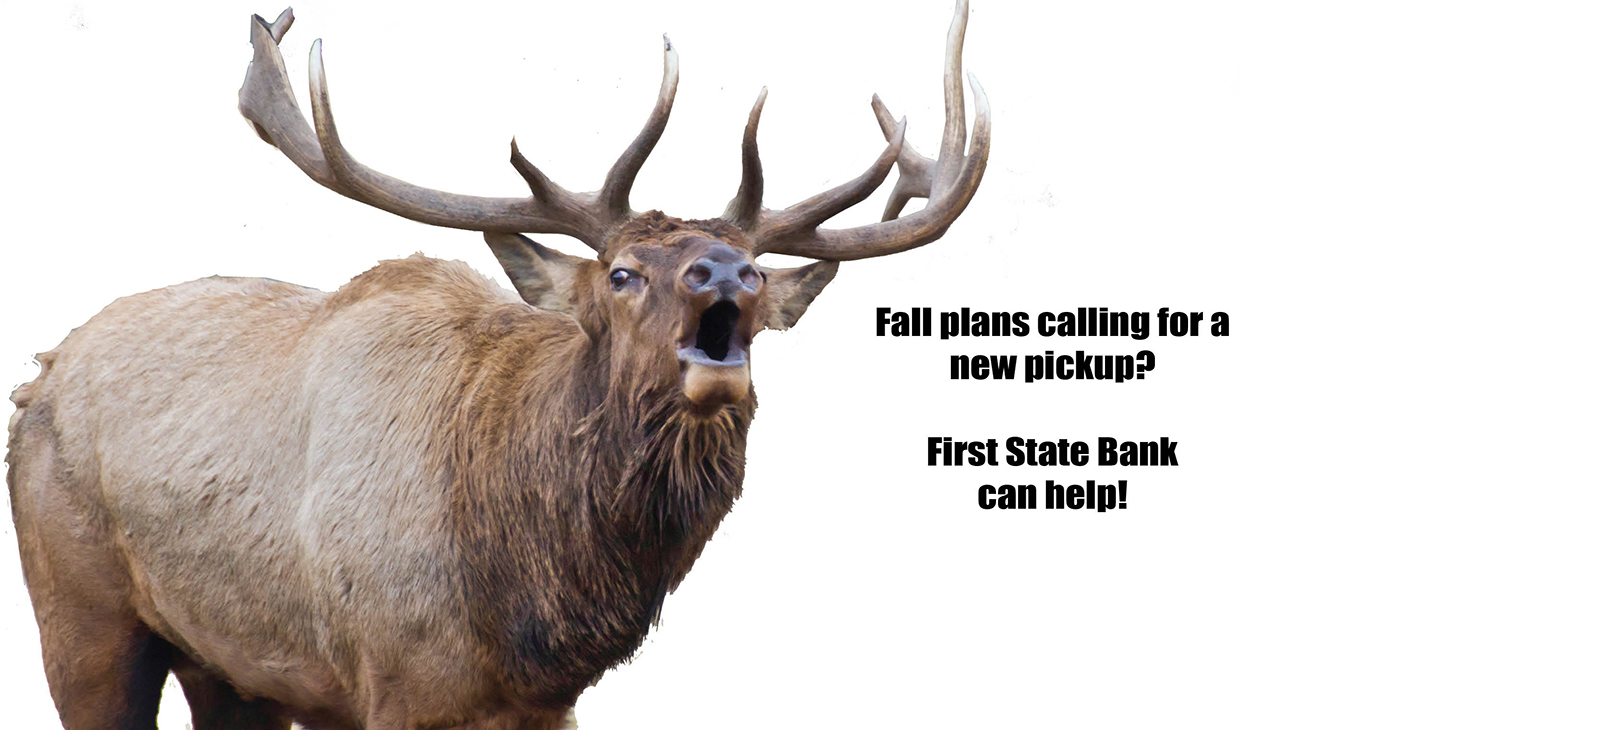 Fall plans calling for a new pickup? First State Bank can help.